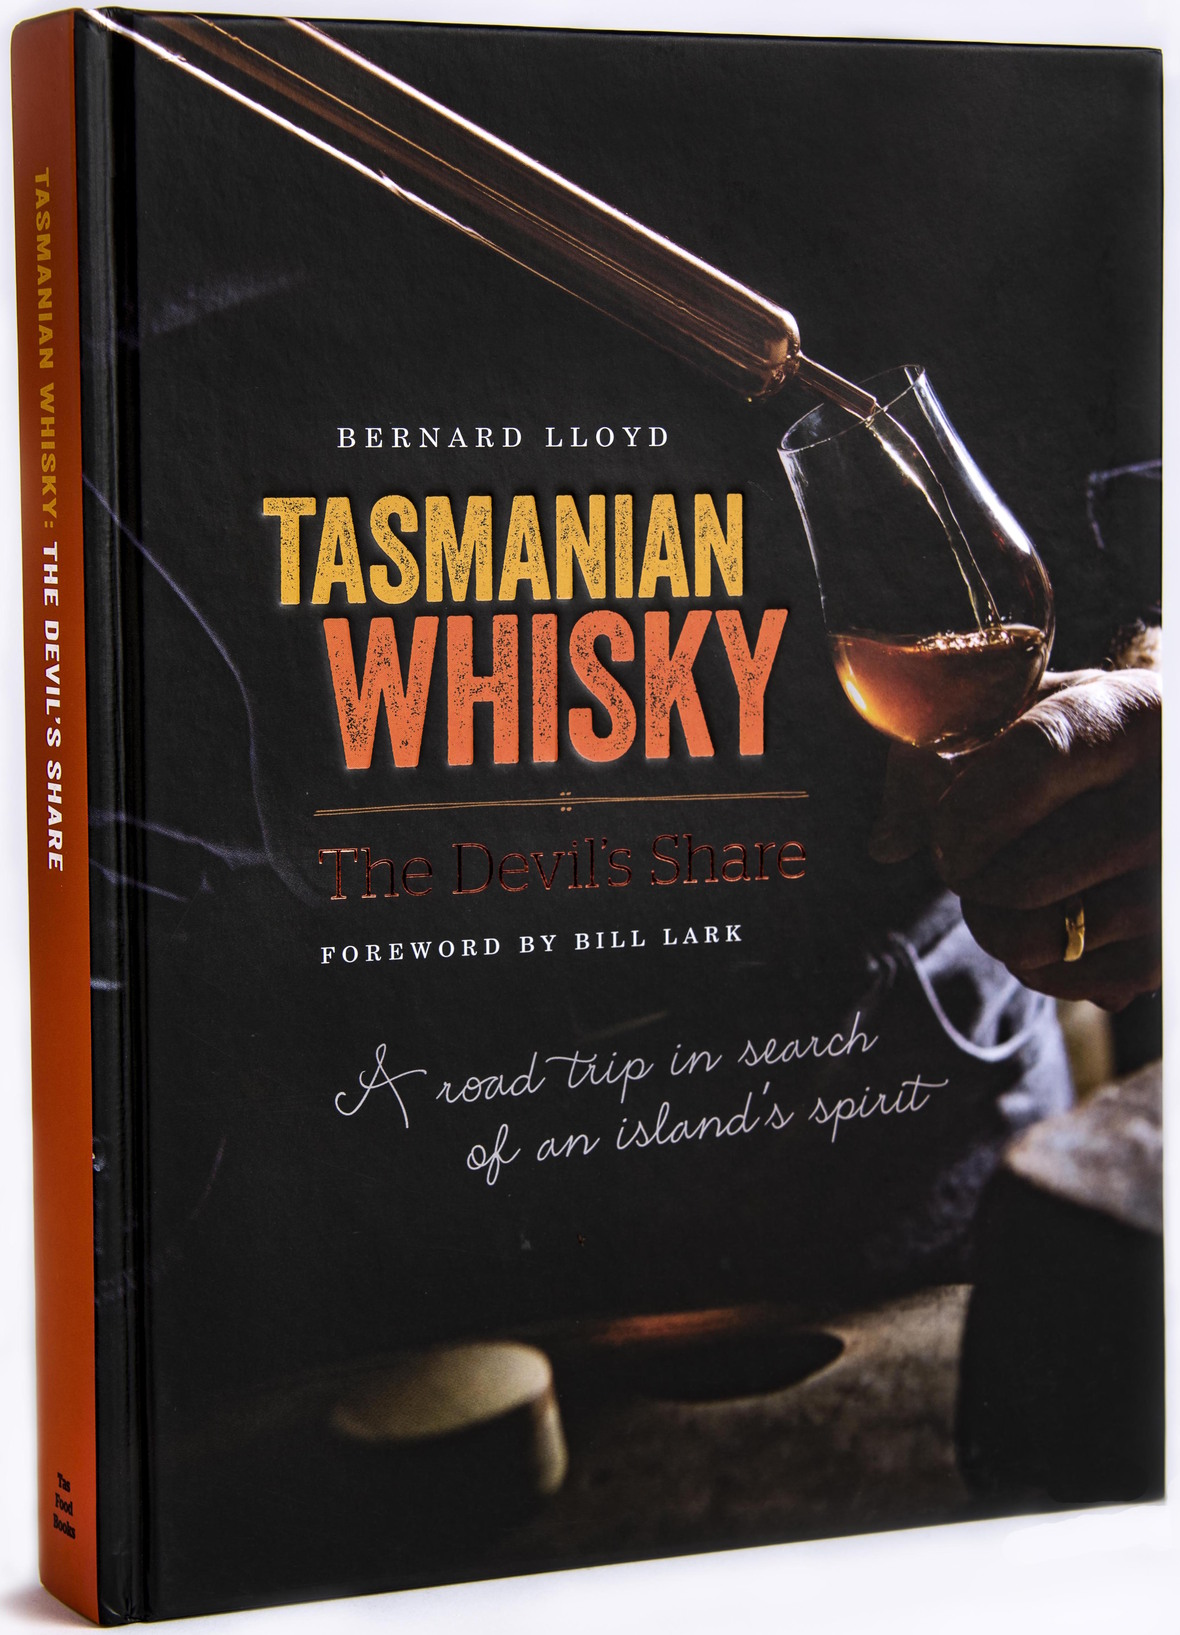 Tasmanian Whisky - book cover copy